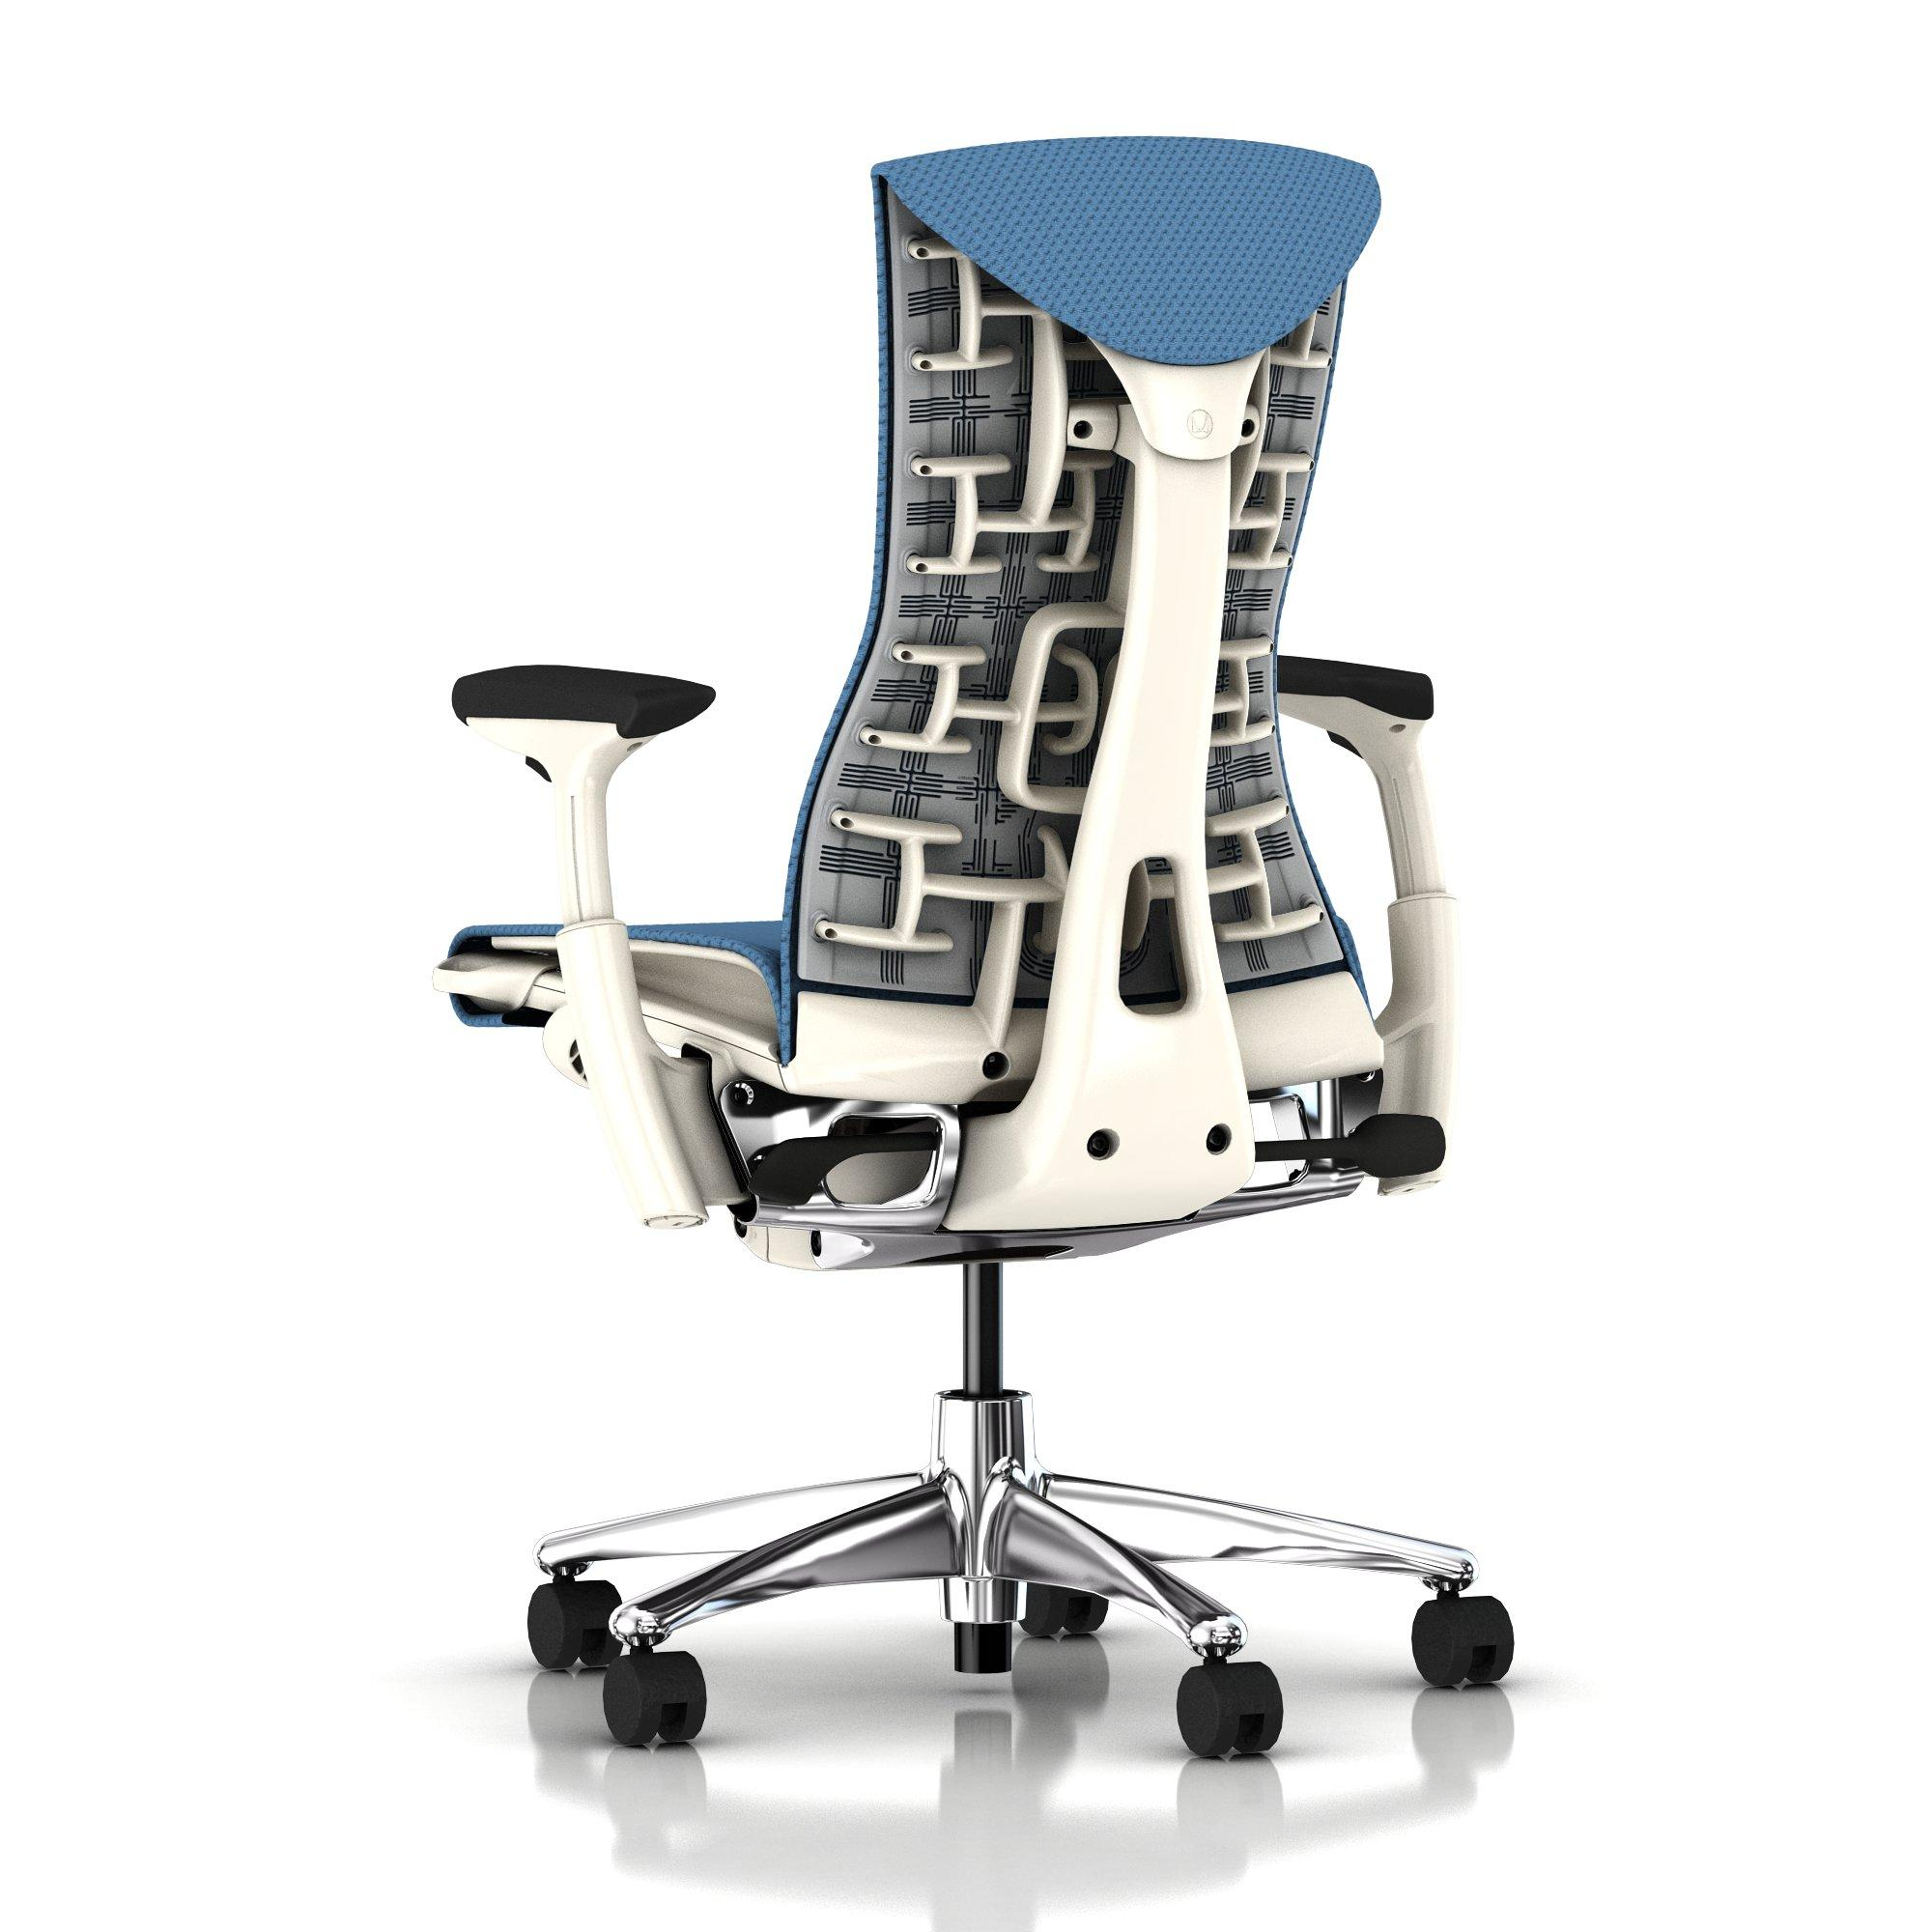 Herman Miller Embody Chair Blue Moon Balance with White